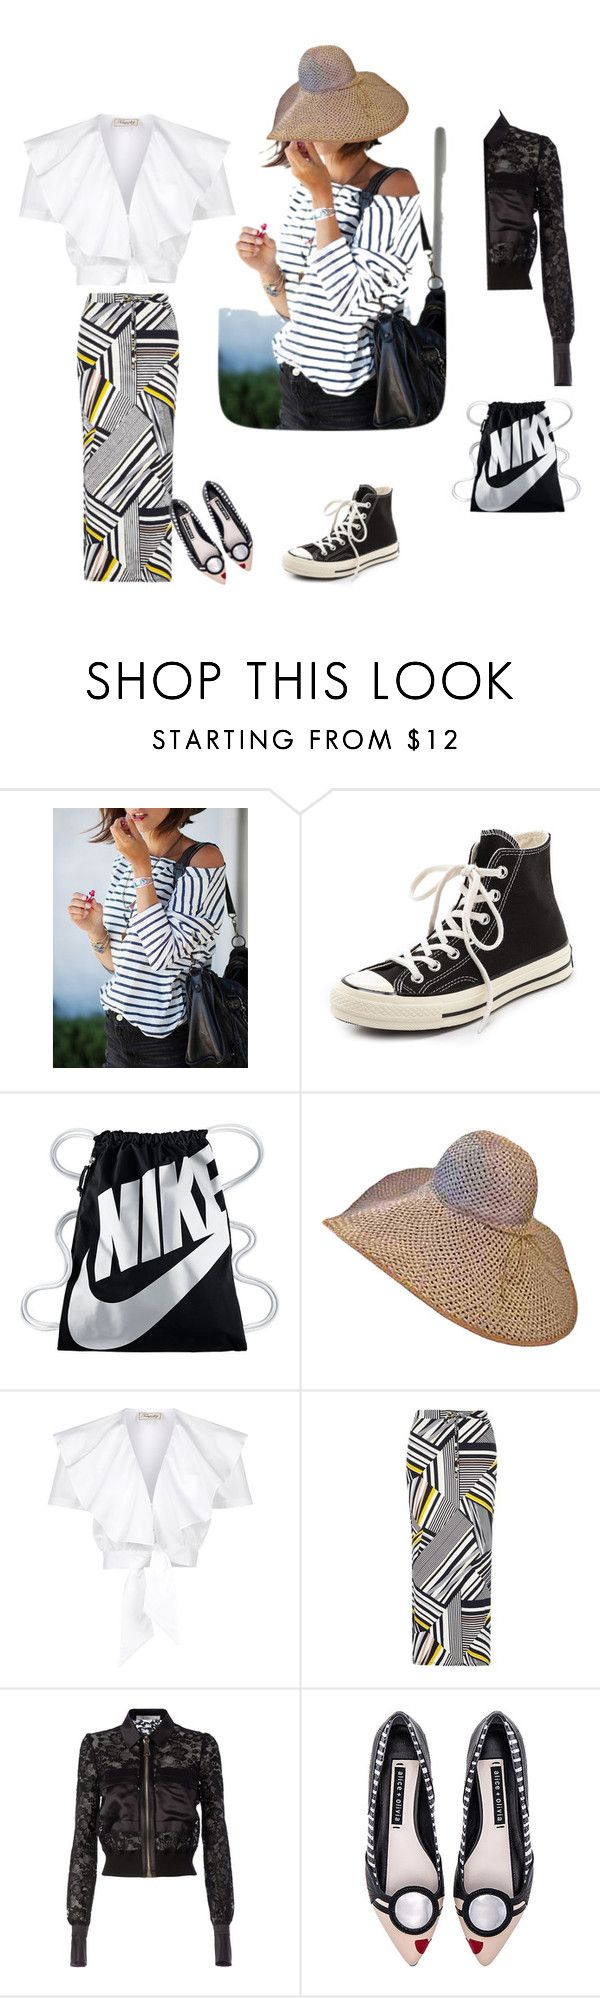 """siyah-beyaz,şık"" by ayse-sedetmen ❤ liked on Polyvore featuring Converse, NIKE, Temperley London, Dorothy Perkins, Givenchy and Alice + Olivia"